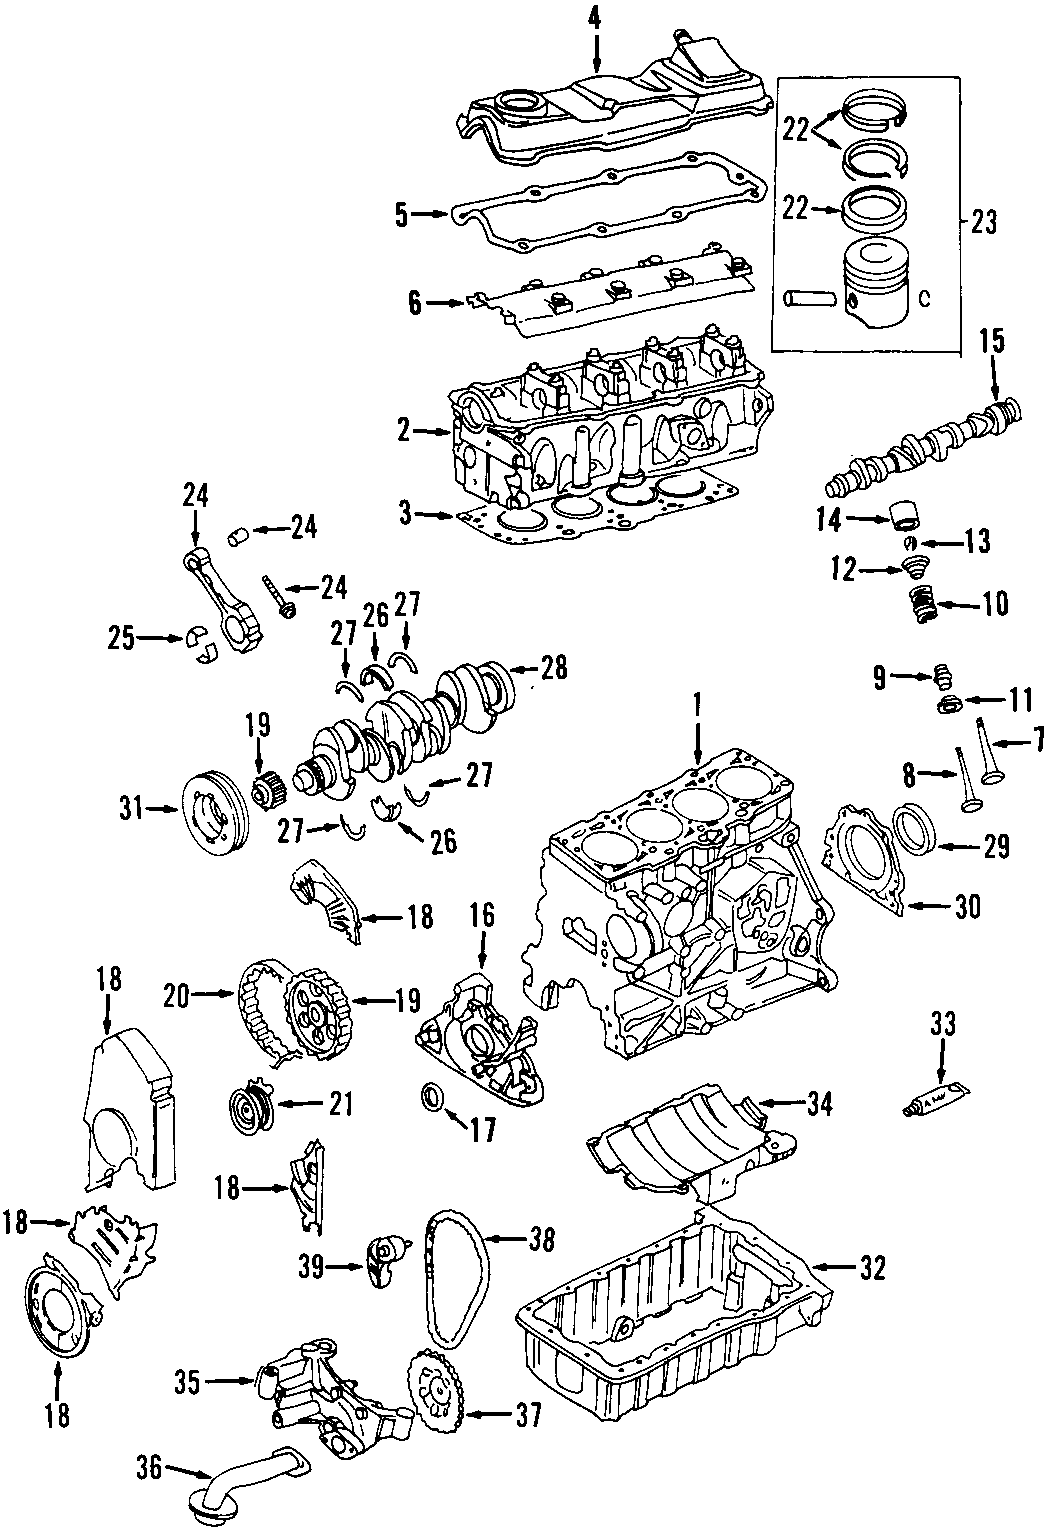 [DIAGRAM] 2002 Vw Beetle 2.0 Engine Diagram FULL Version